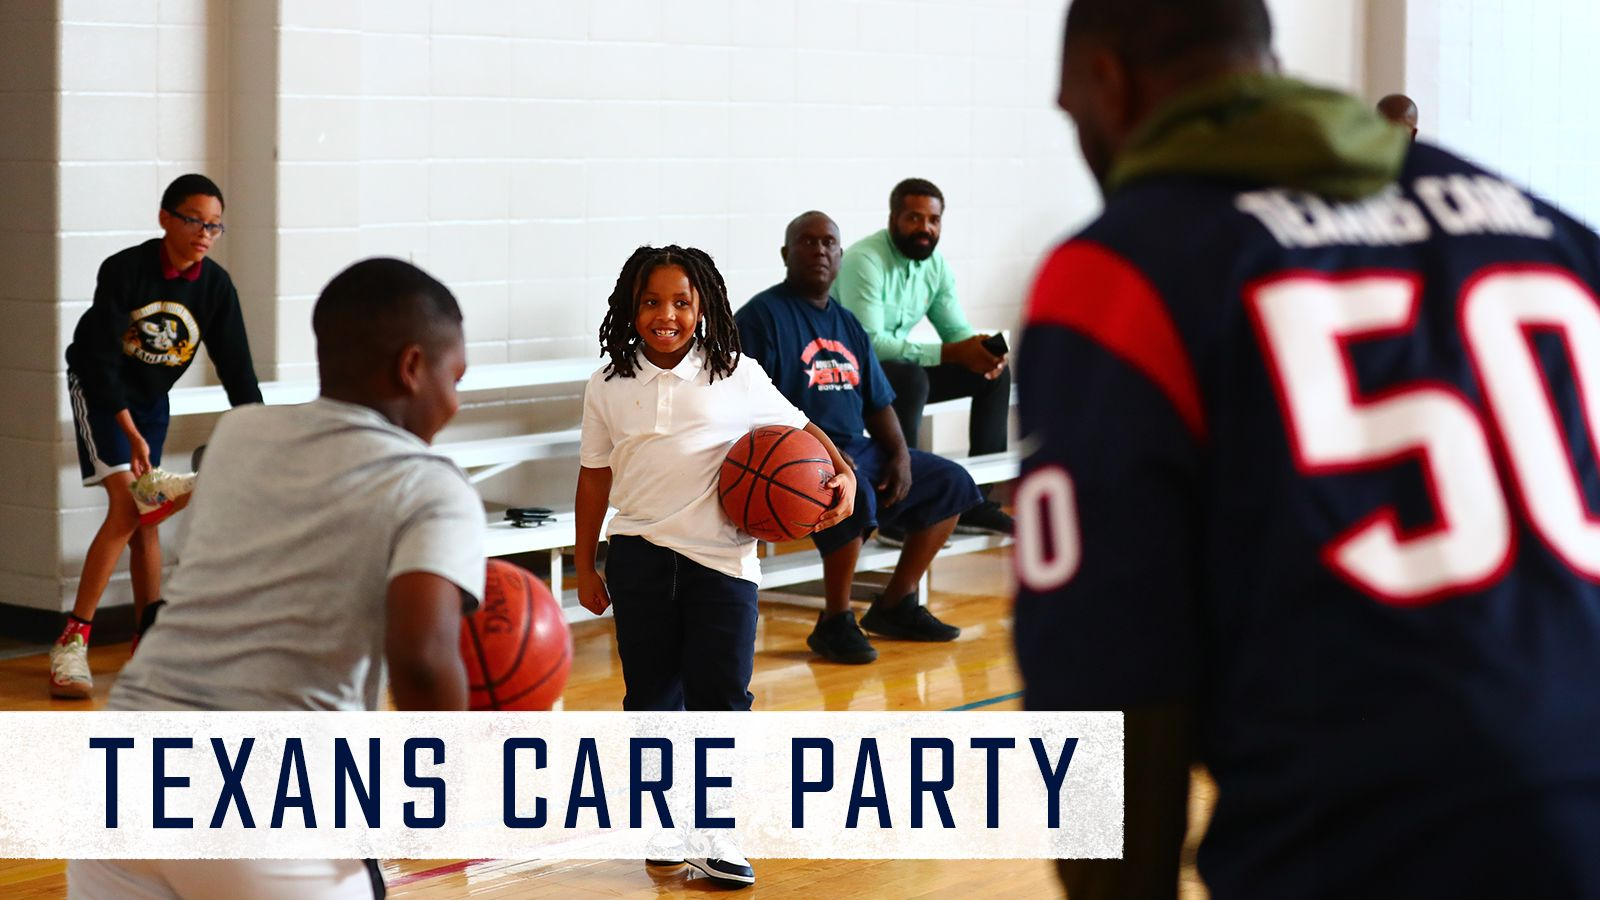 Texans Care Party